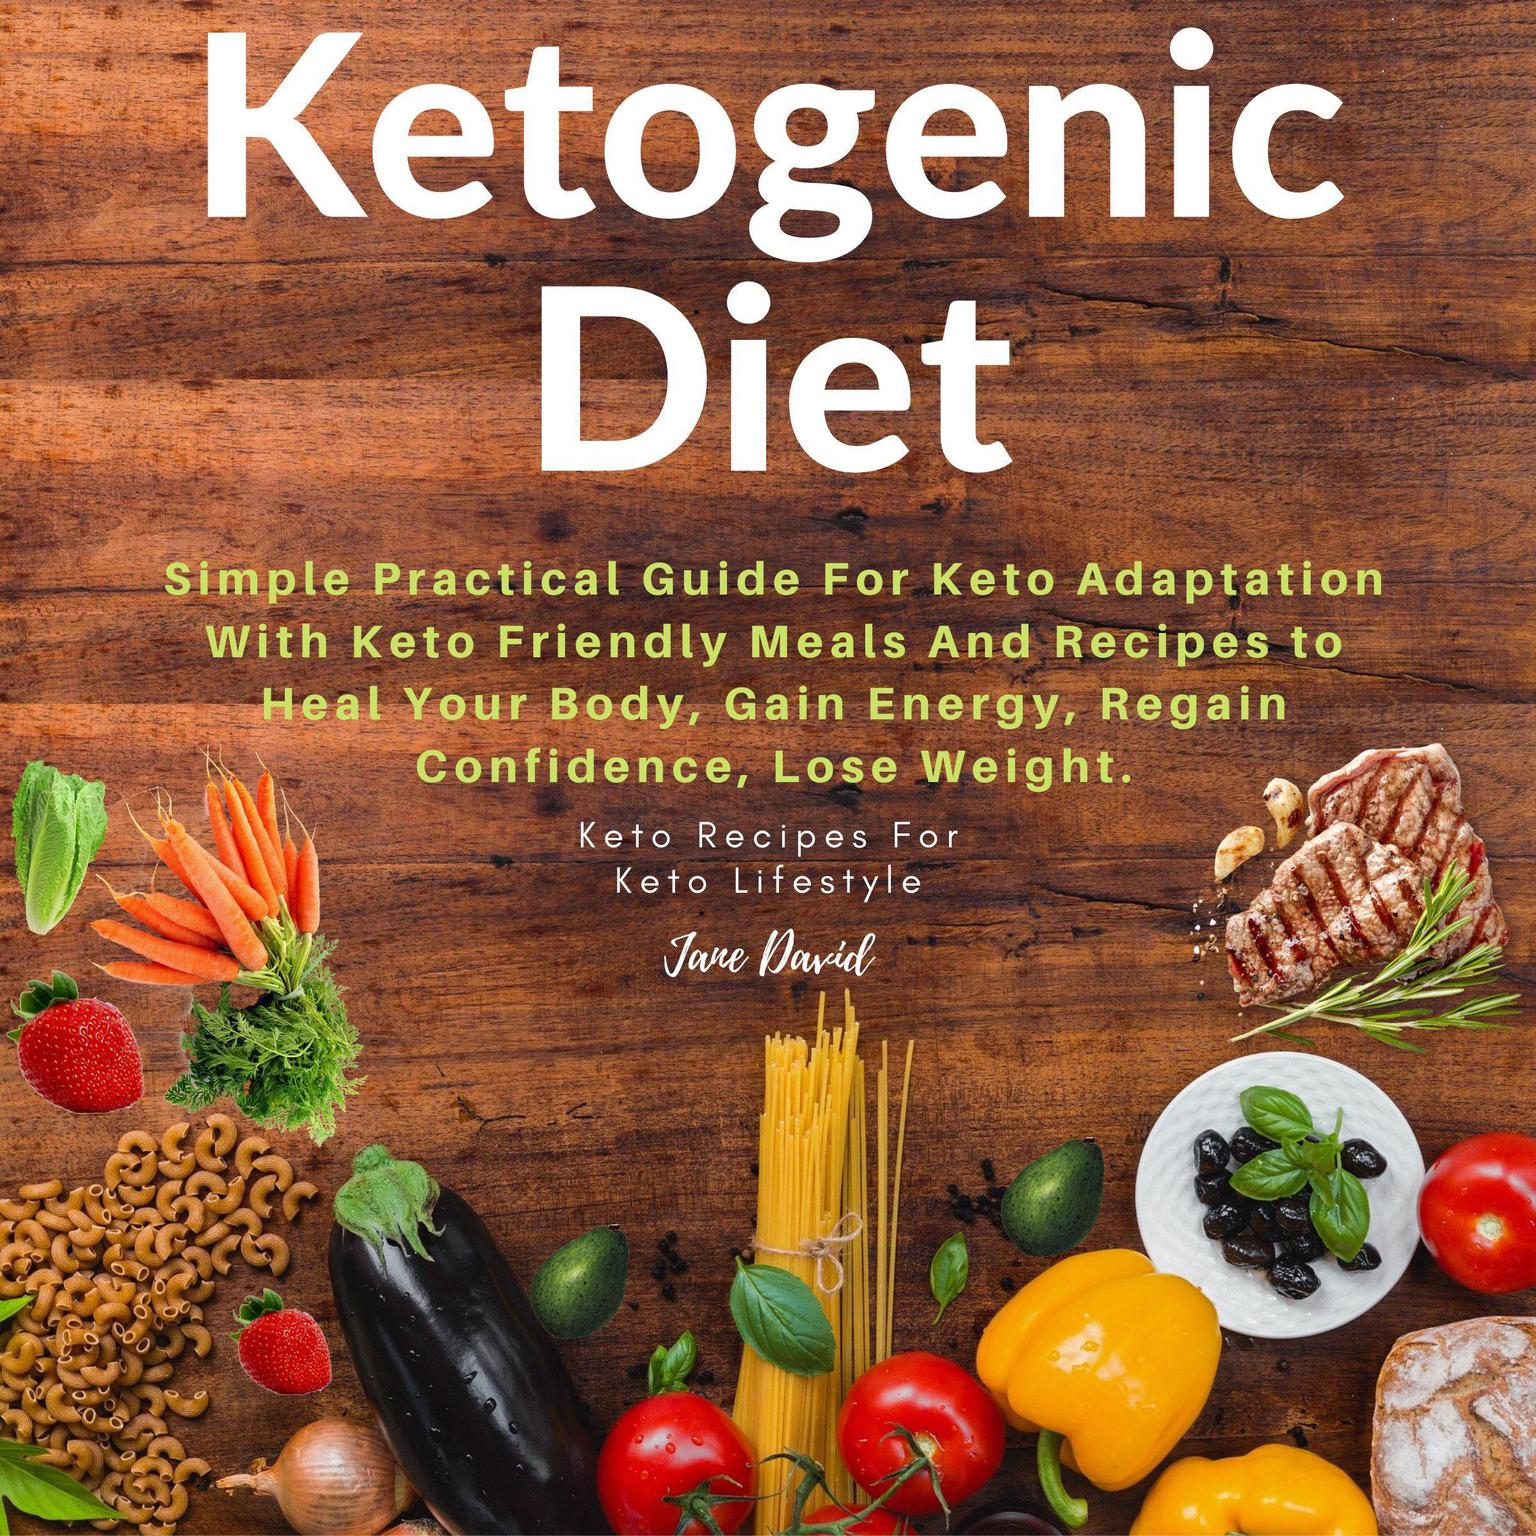 Printable Ketogenic Diet: Simple Practical Guide For Keto Adaptation with Keto Friendly Meals and Recipes to Heal Your Body, Gain Energy, Regain Confidence, Lose Fat and Build Muscles (Keto Diet Plan): Simple Practical Guide For Keto Adaptation with Keto Friendly Meals and Recipes to Heal Your Body, Gain Energy, Regain Confidence, Lose Fat and Build Muscles (Keto Diet Plan) Audiobook Cover Art